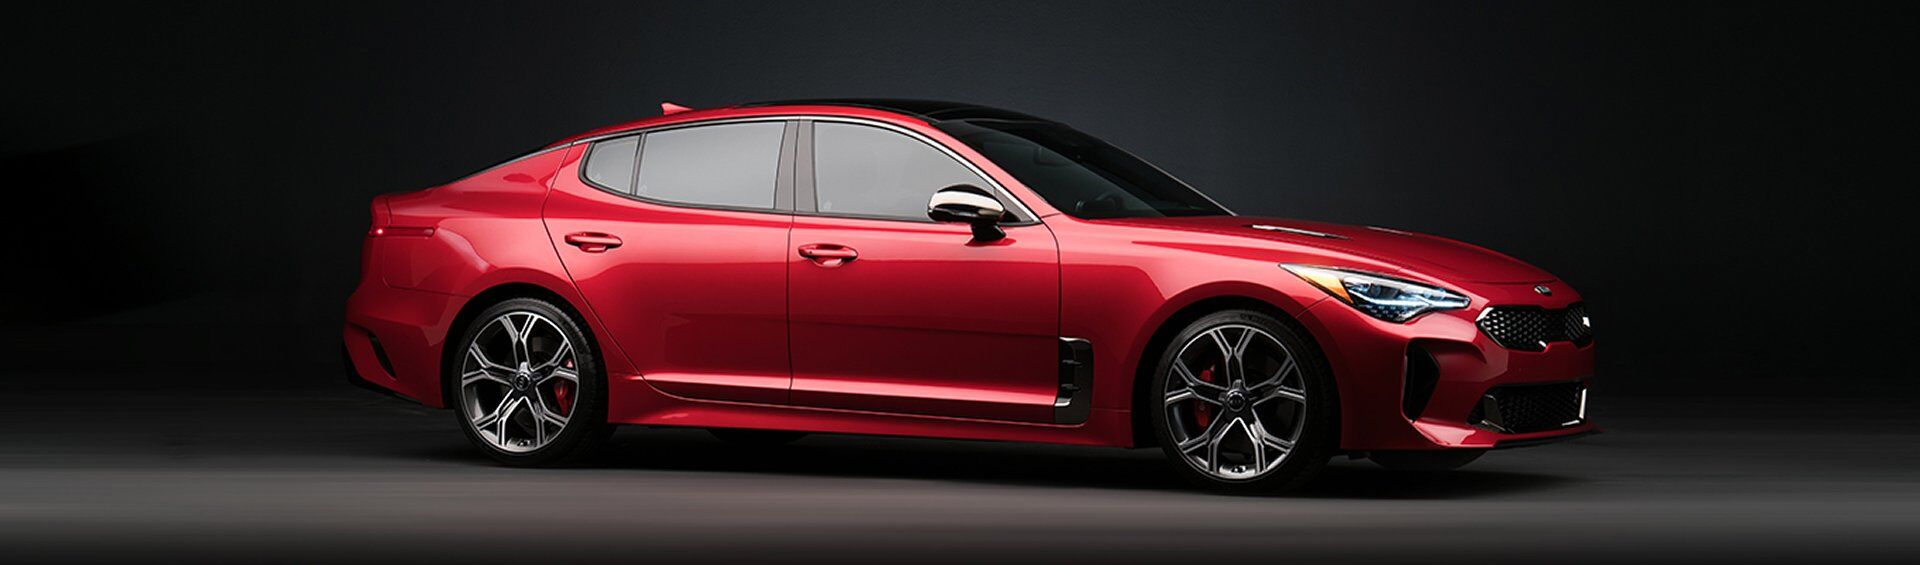 New Kia Stinger Dealer in Phoenix Peoria